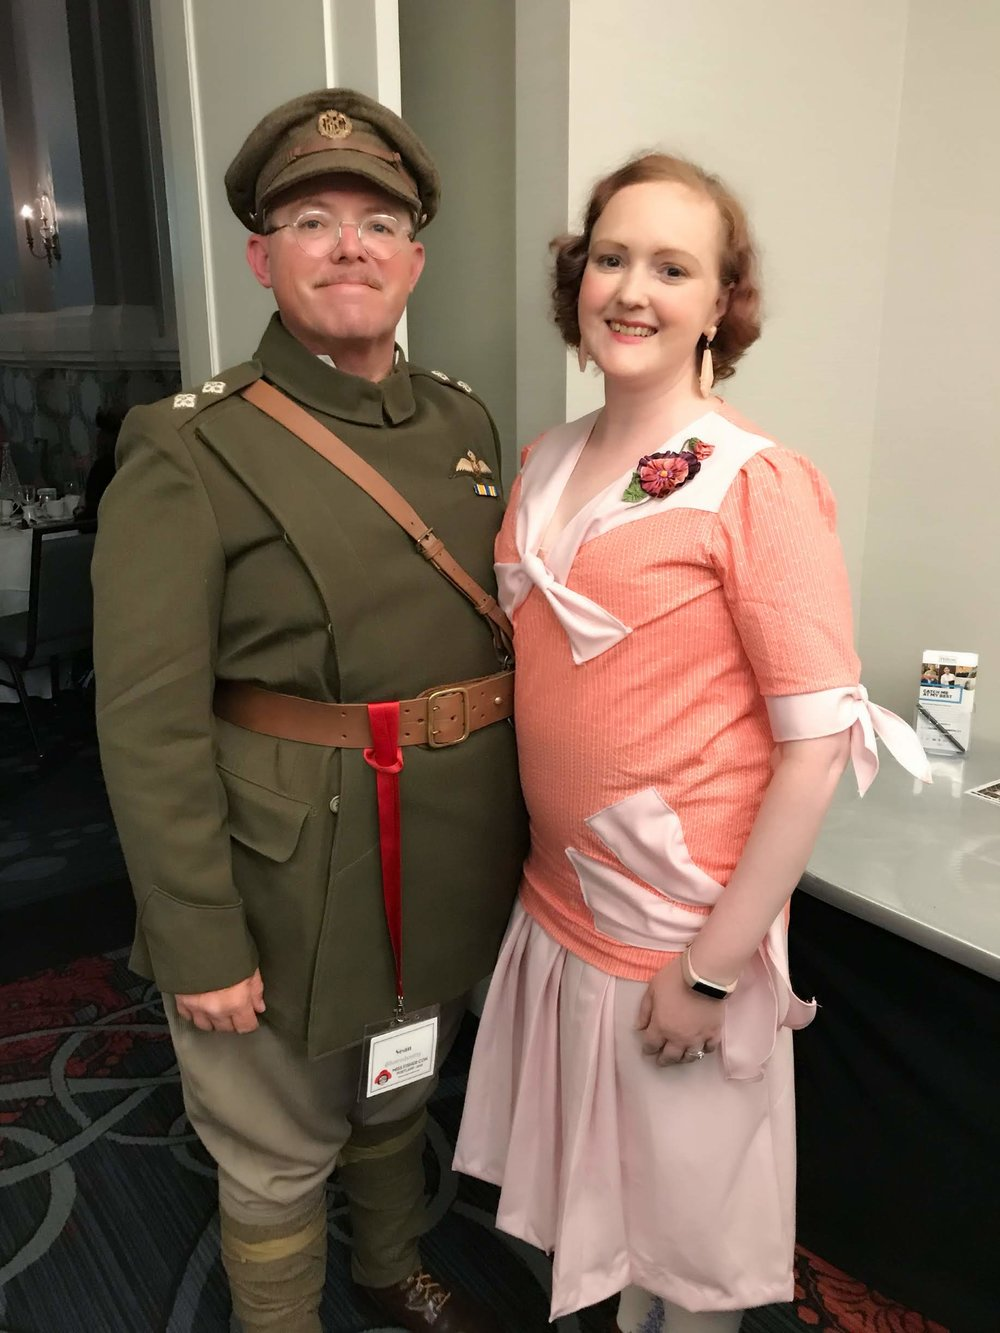 The Beautiful Laura (with Fiancee Sean) who gave the undergarment lectures. You can find her on Instagram as  @winters.lore  and her fiancee  @hotrodsmitty